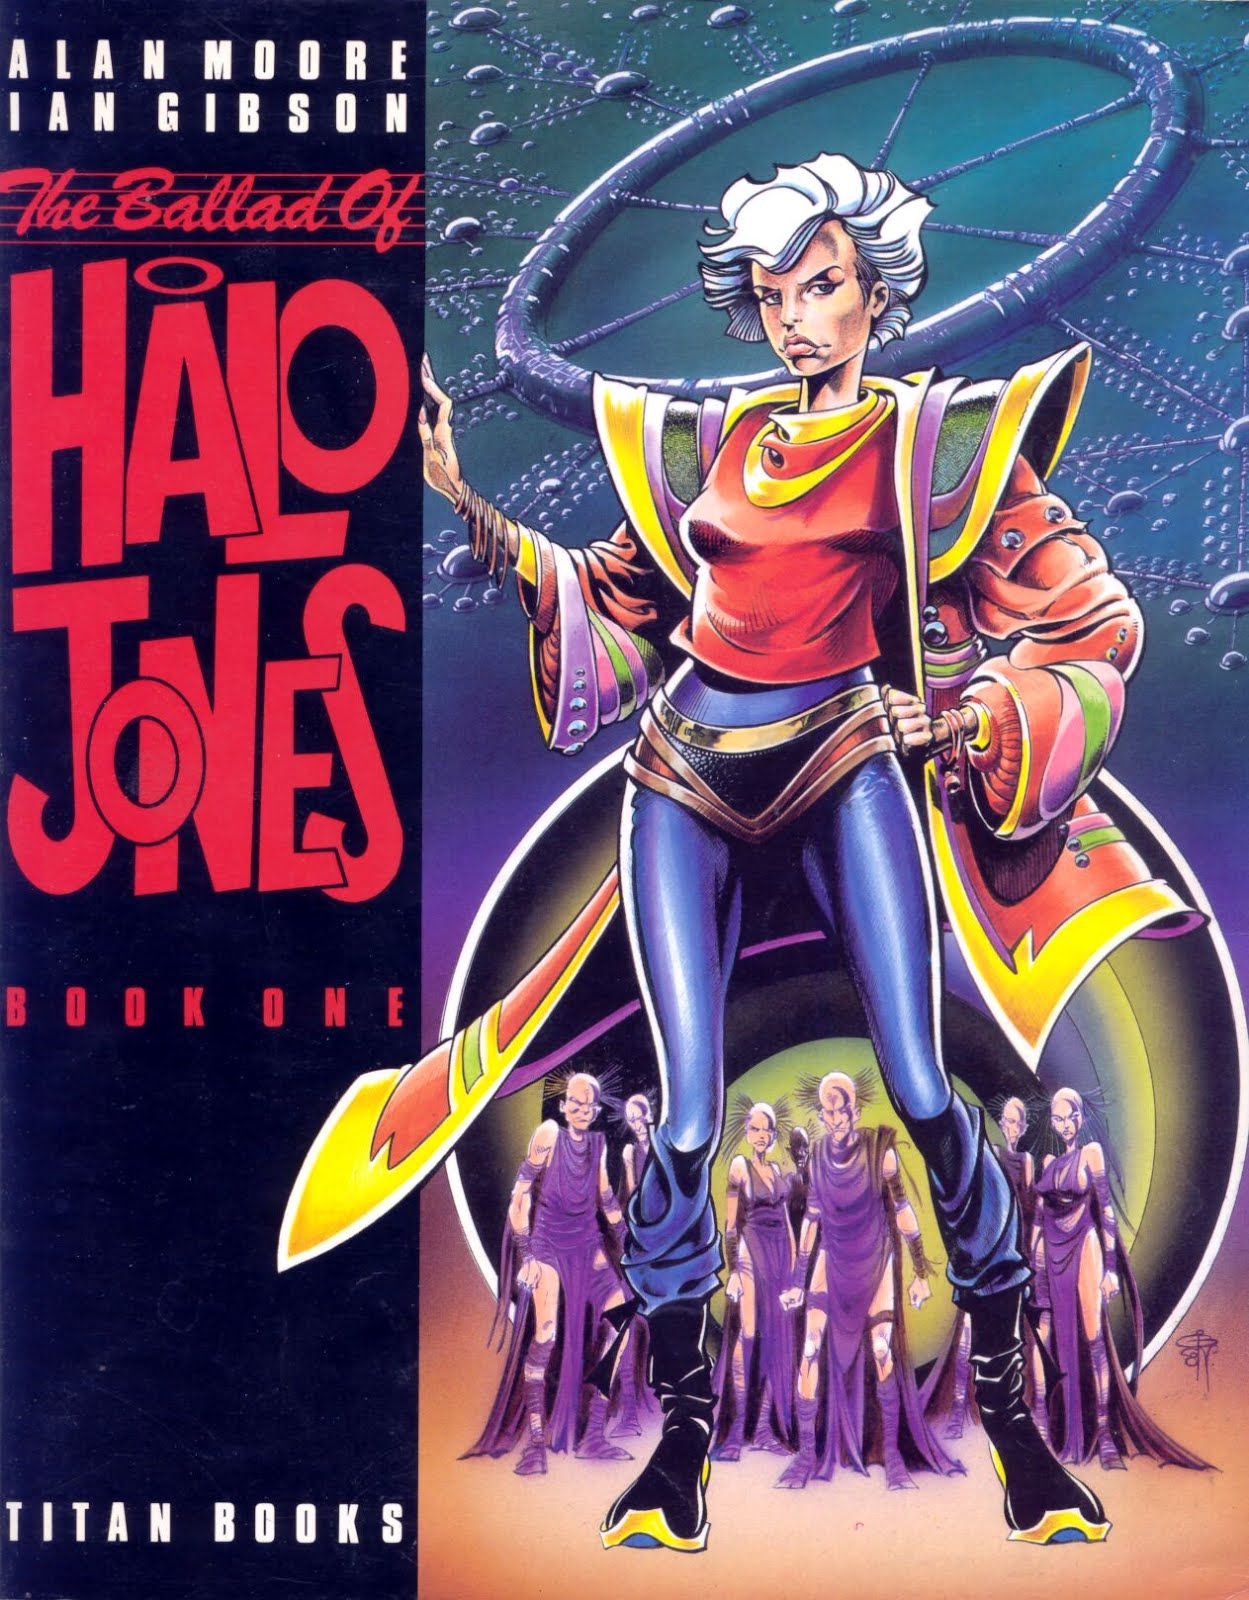 The Ballad of Halo Jones